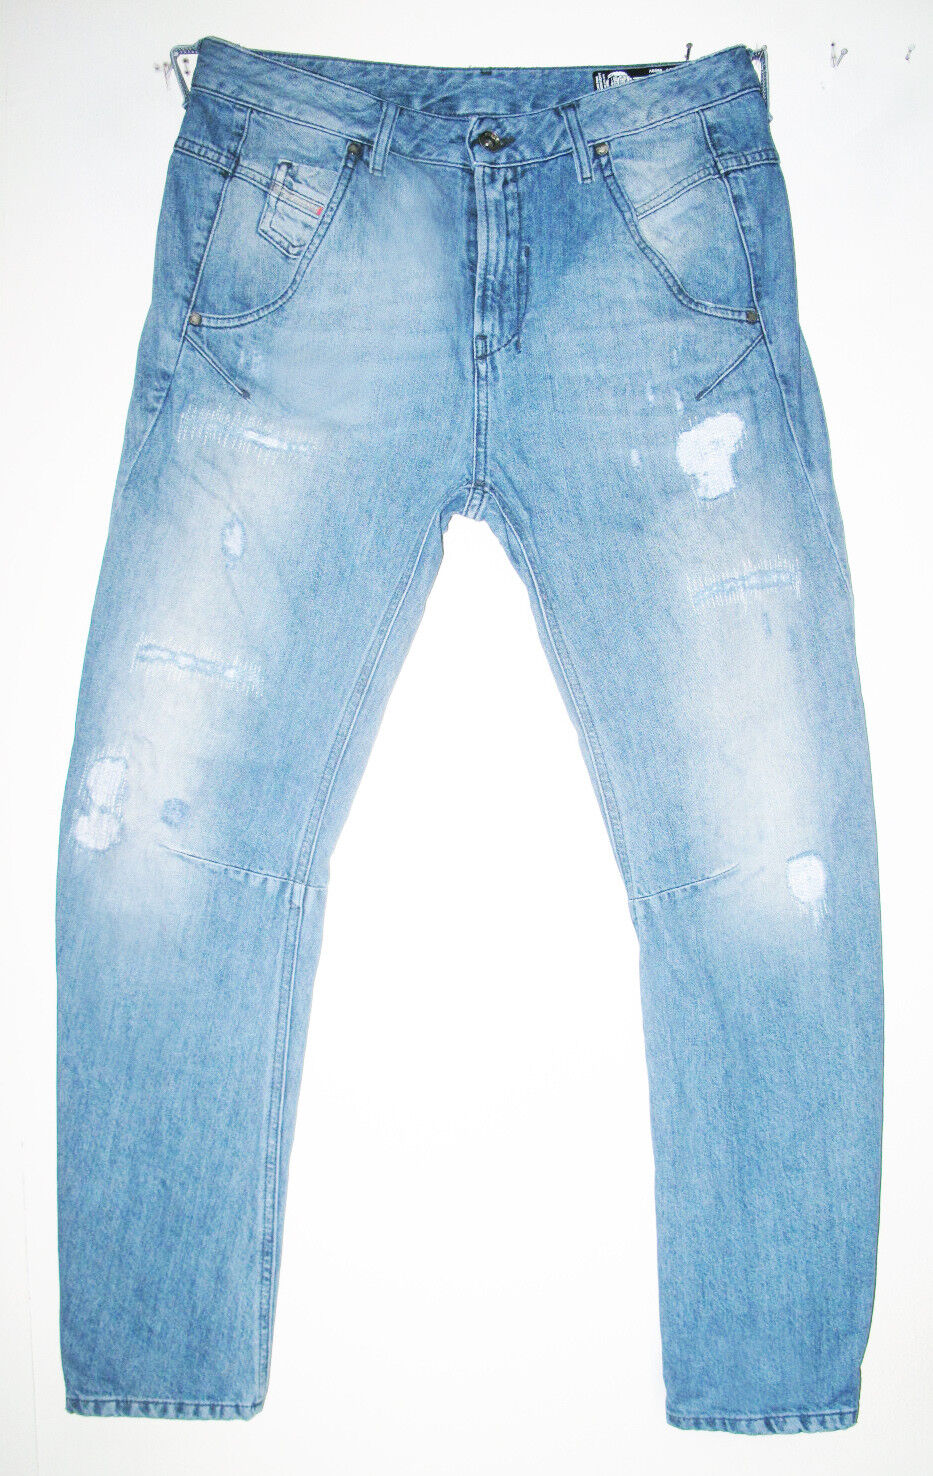 HOT Women's DIESEL @ FAYZA Art 859V RELAXED BOYFRIEND DISTRESS Jeans 6  28 x 34